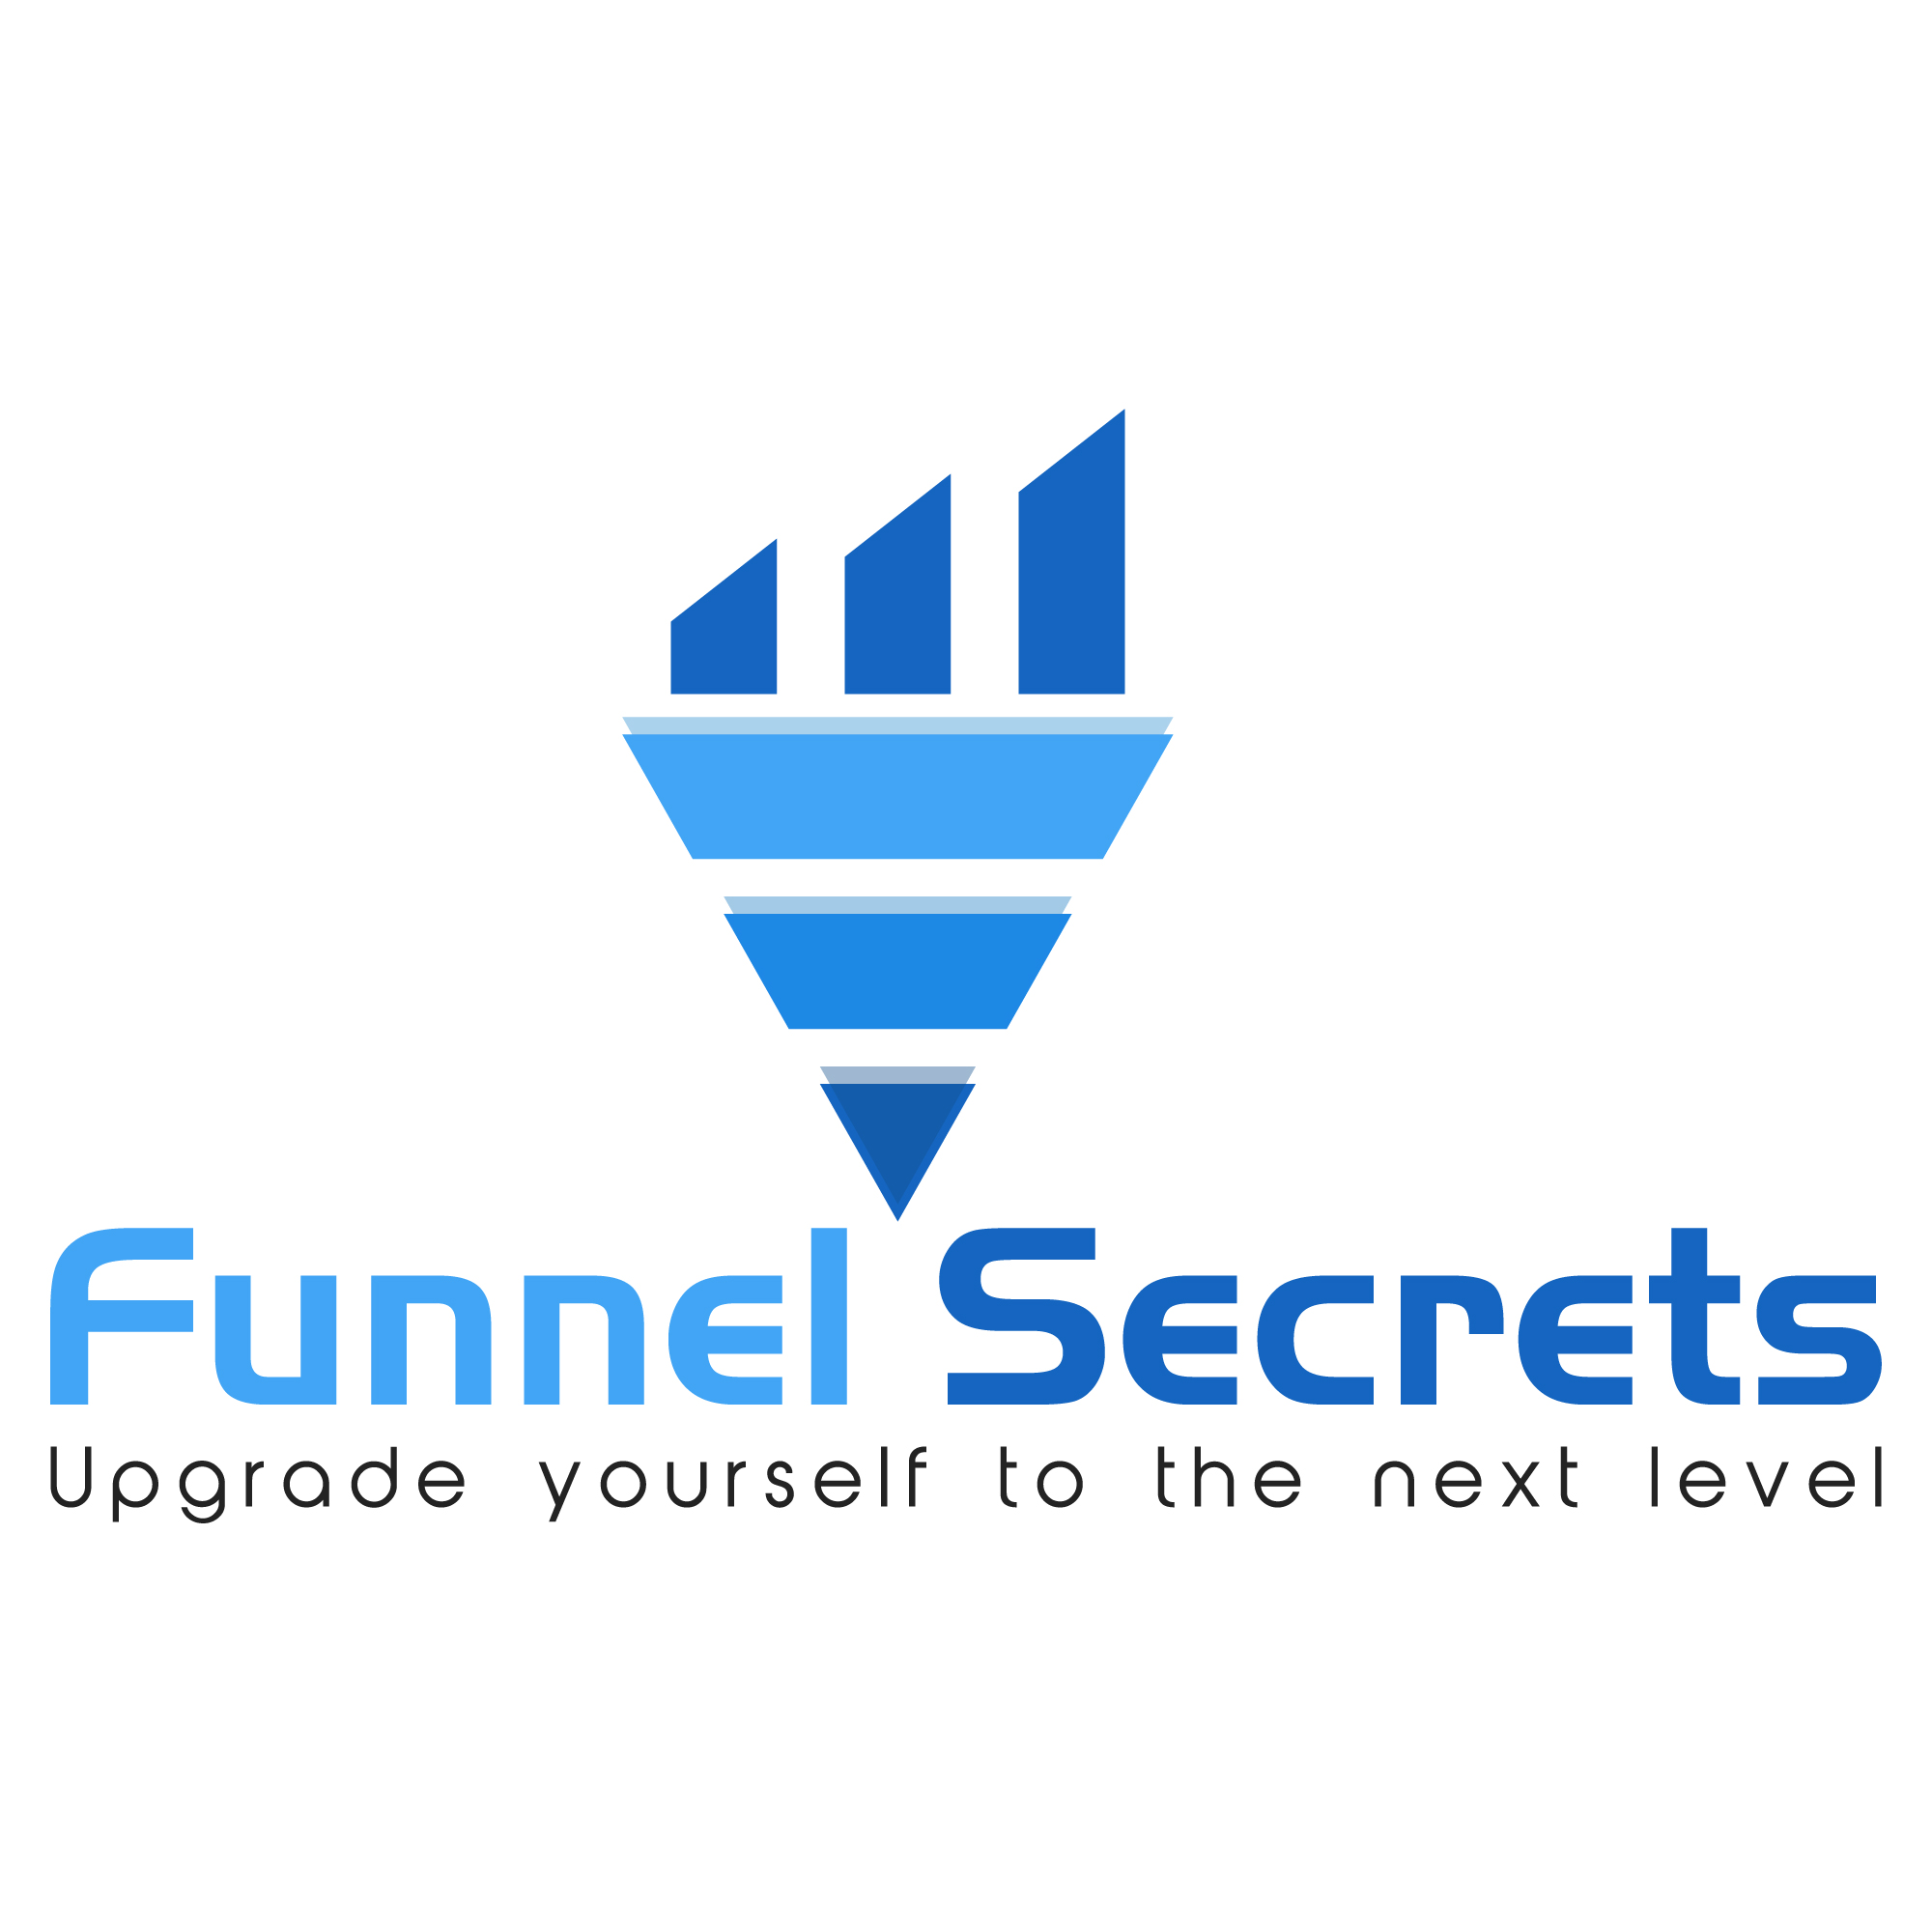 funnel secrets logo